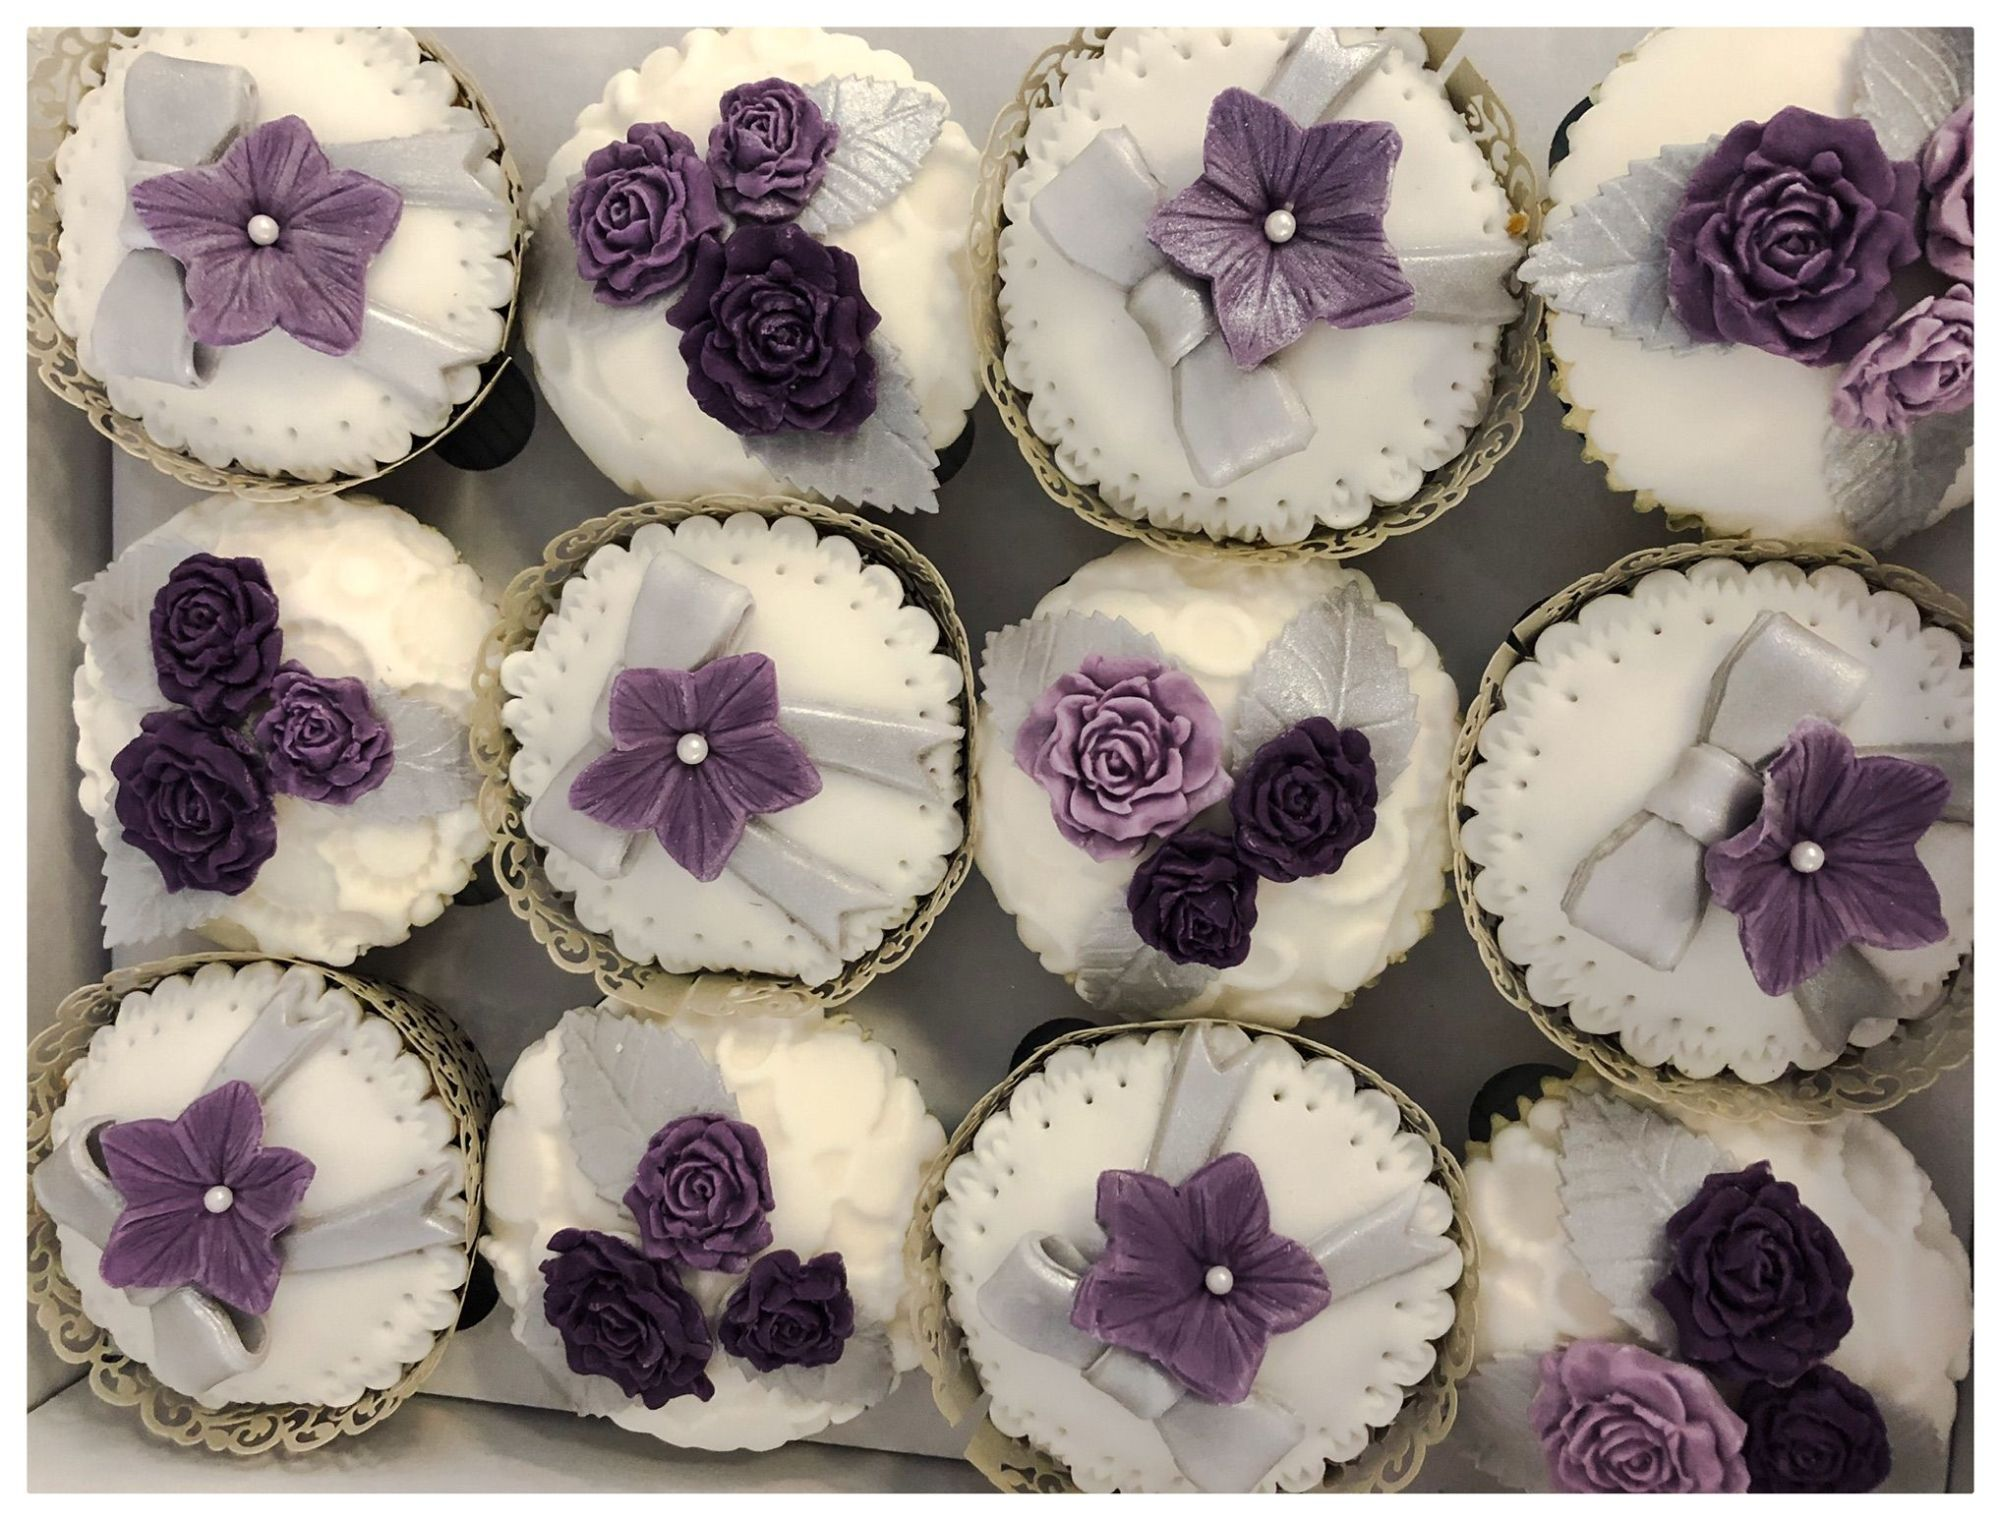 purple wedding cupcakes 2